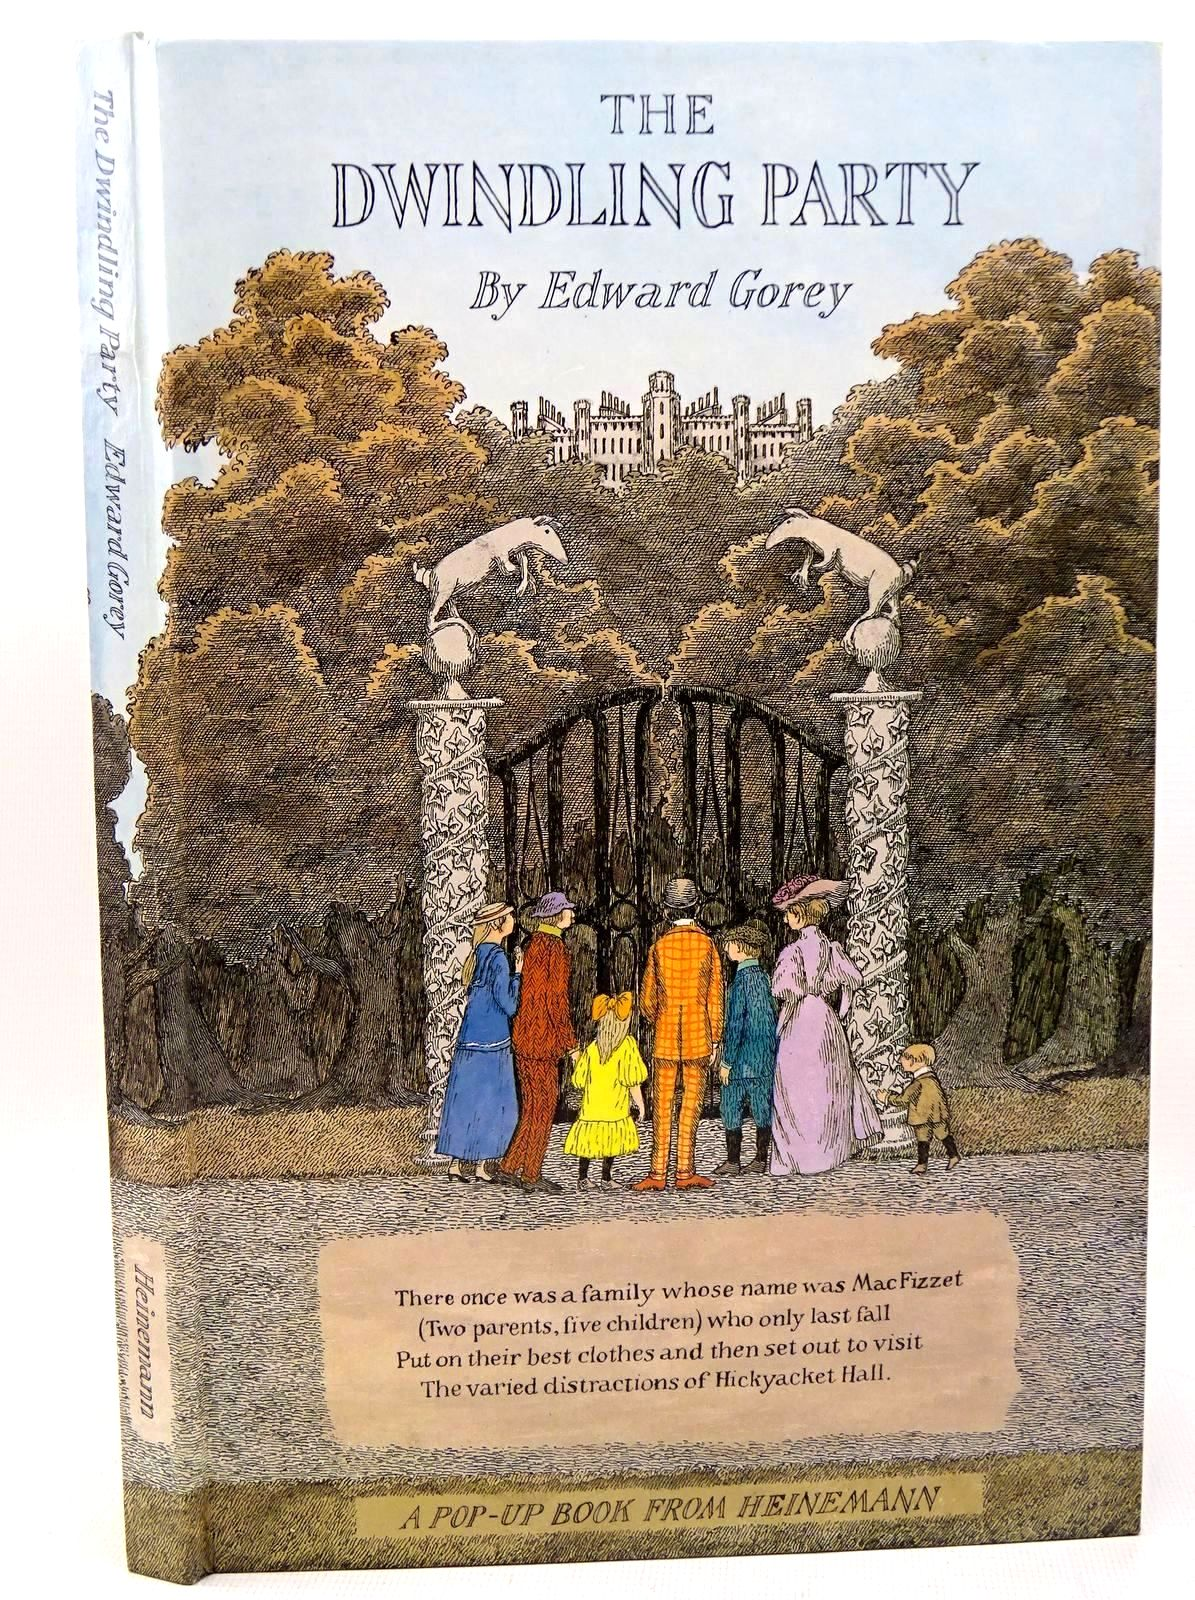 Photo of THE DWINDLING PARTY written by Gorey, Edward illustrated by Gorey, Edward published by William Heinemann Ltd. (STOCK CODE: 1317611)  for sale by Stella & Rose's Books